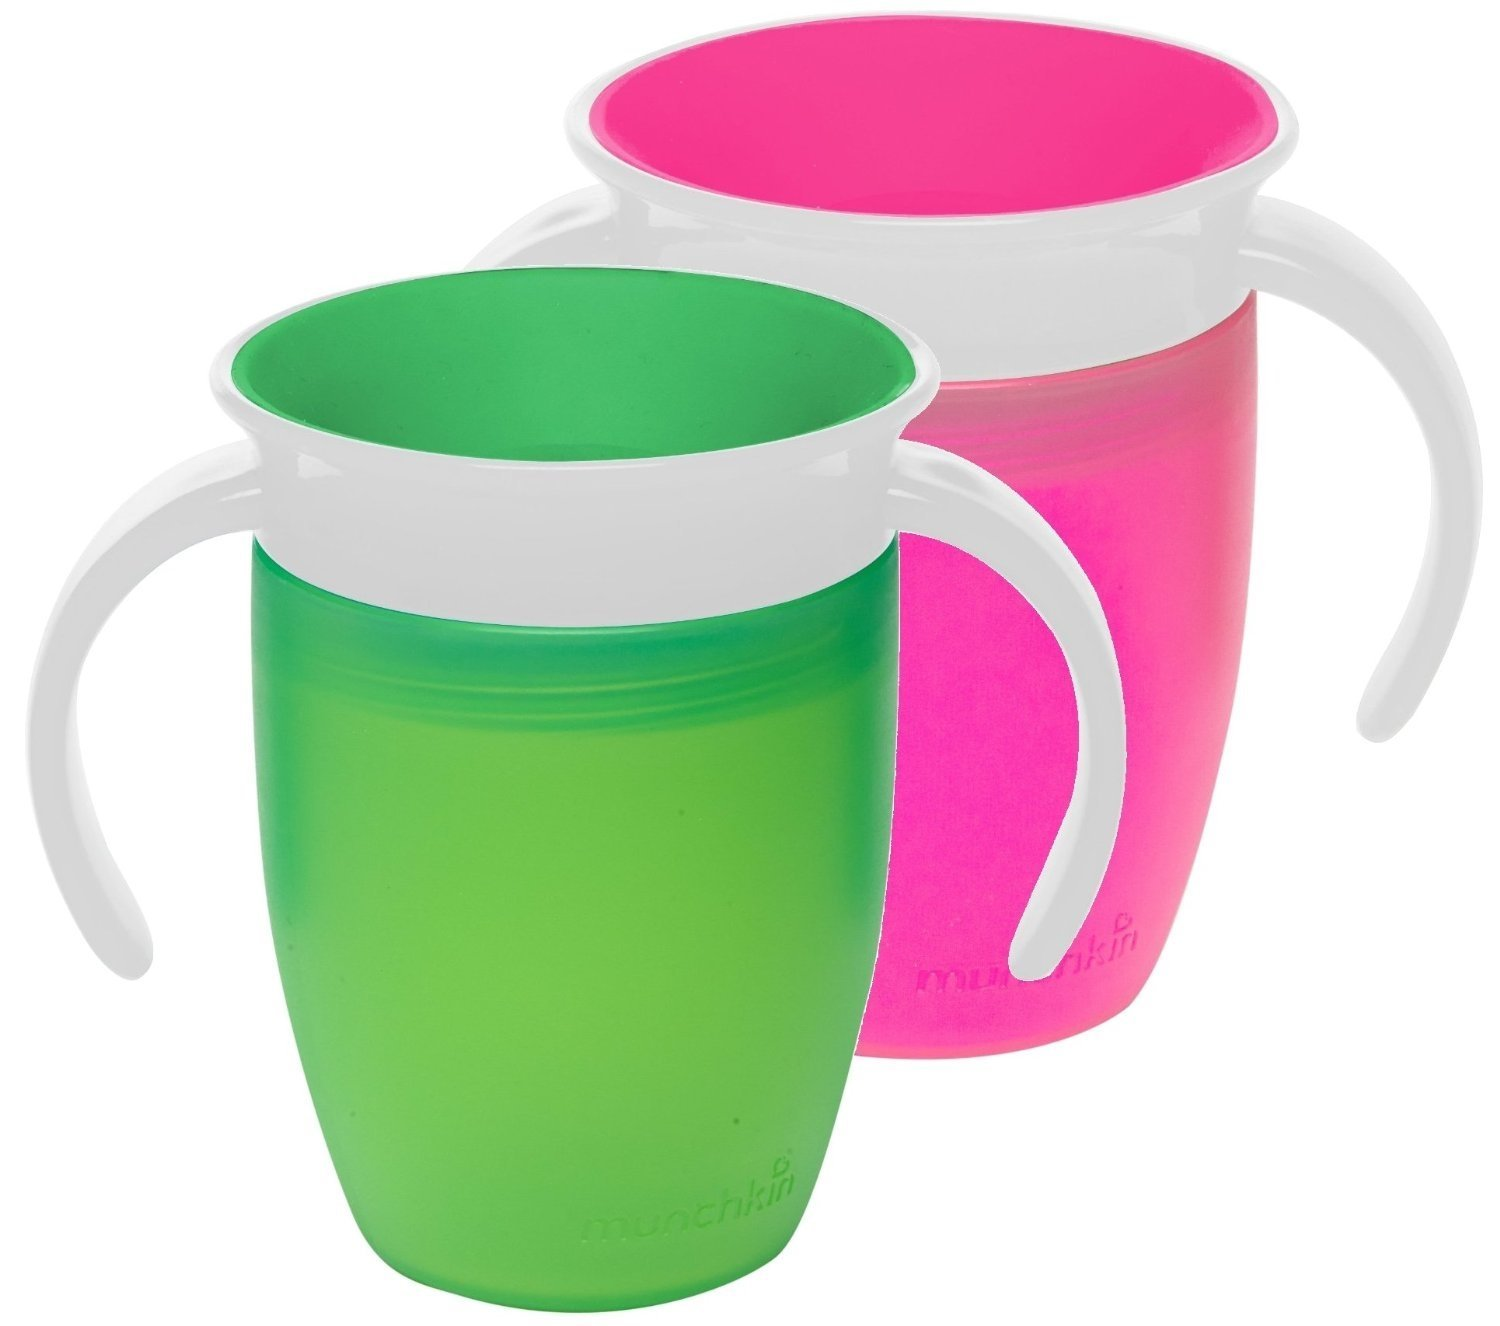 Munchkin 7 Oz Miracle Trainer Cup Green BPA free